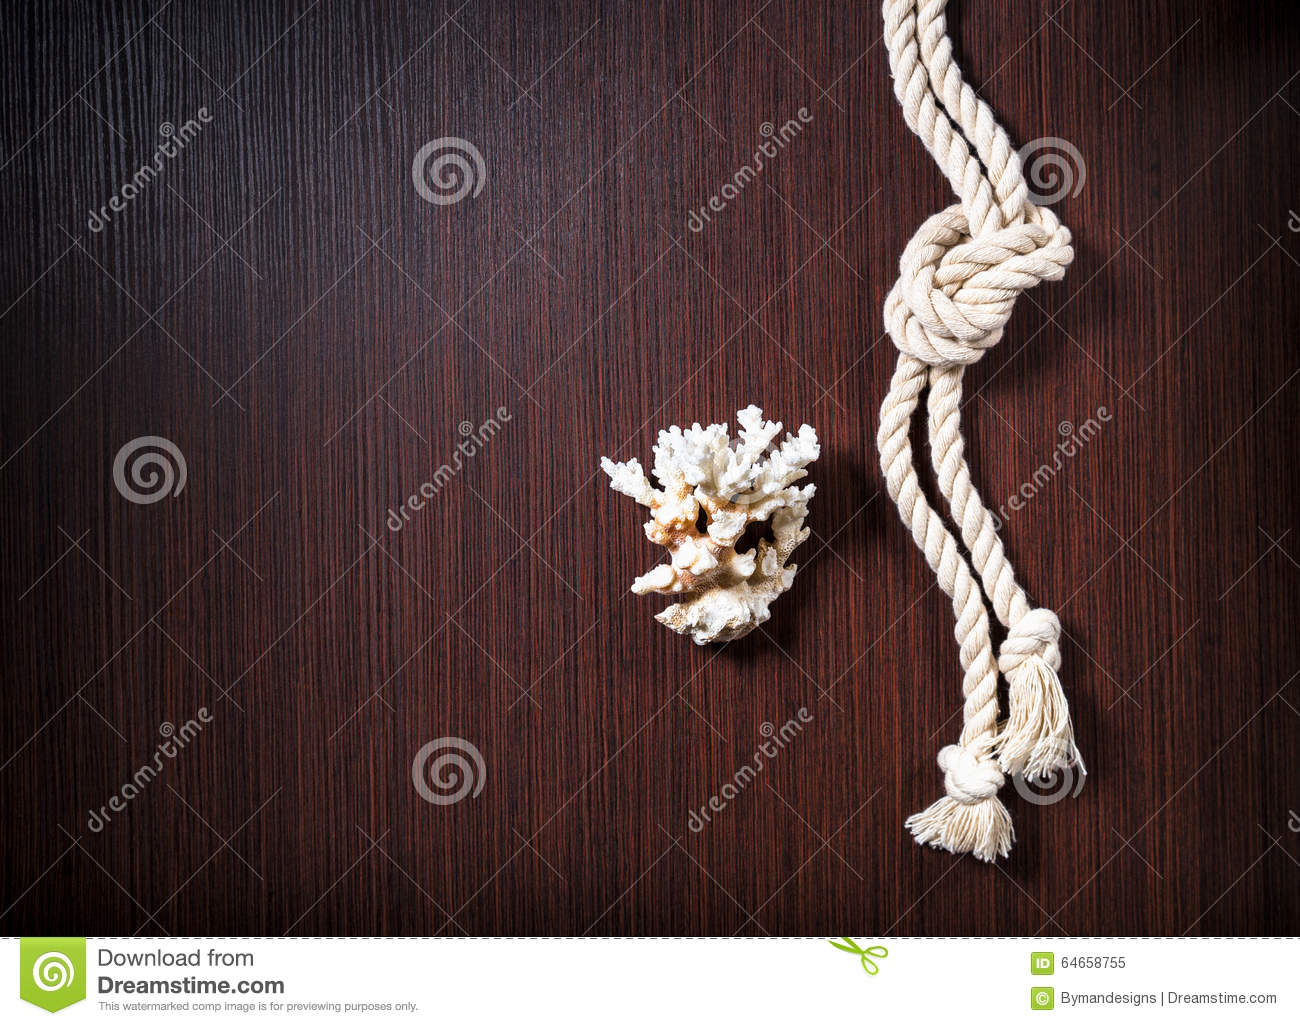 Rope with white coral on wood table stock photo image for Table coral sample